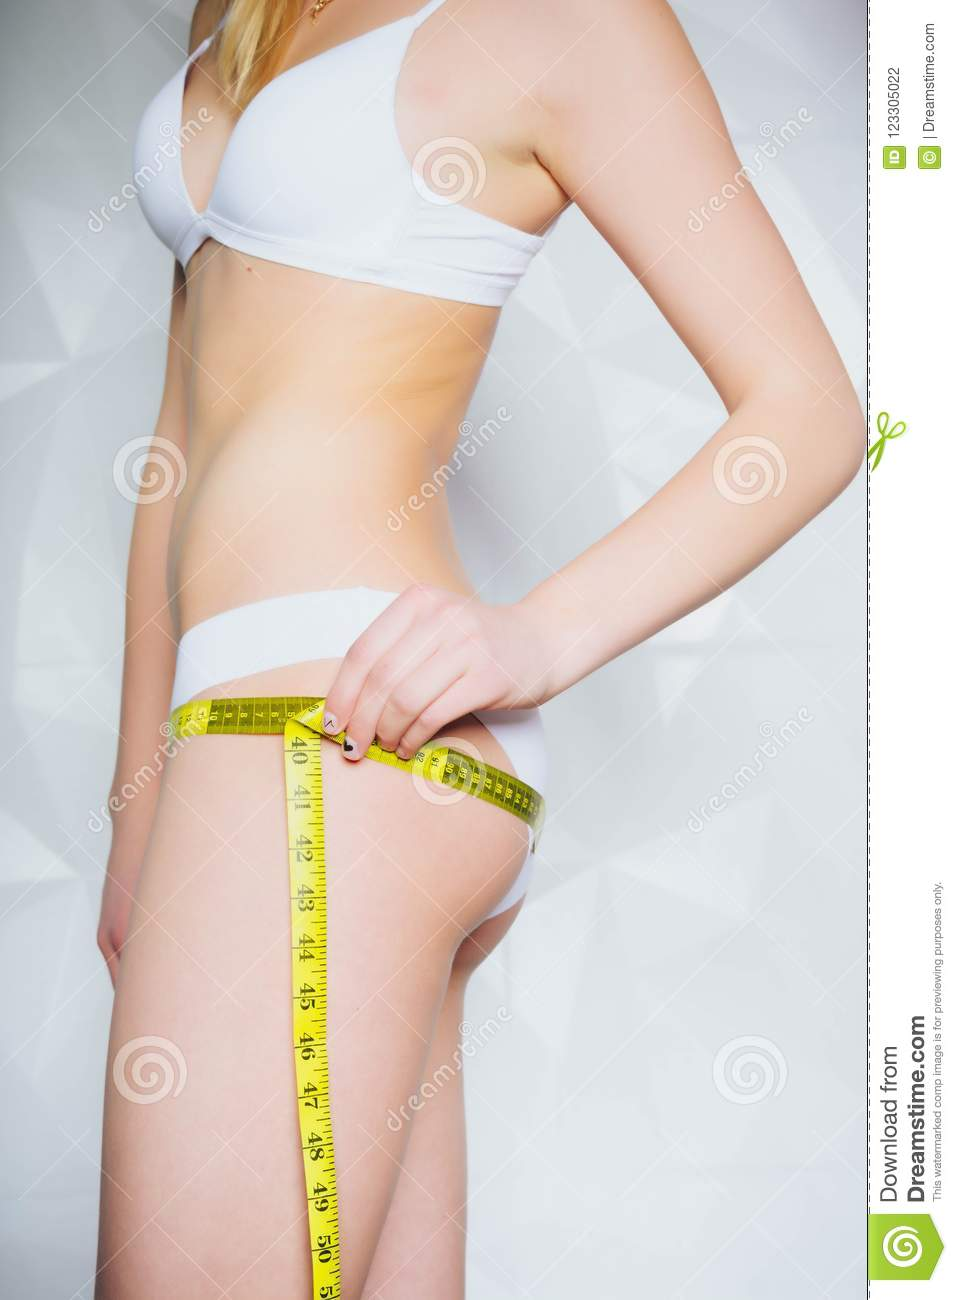 Waist measurement. There are many reasons why you might want to lose weight. overweight or obese for a long time, then you might h